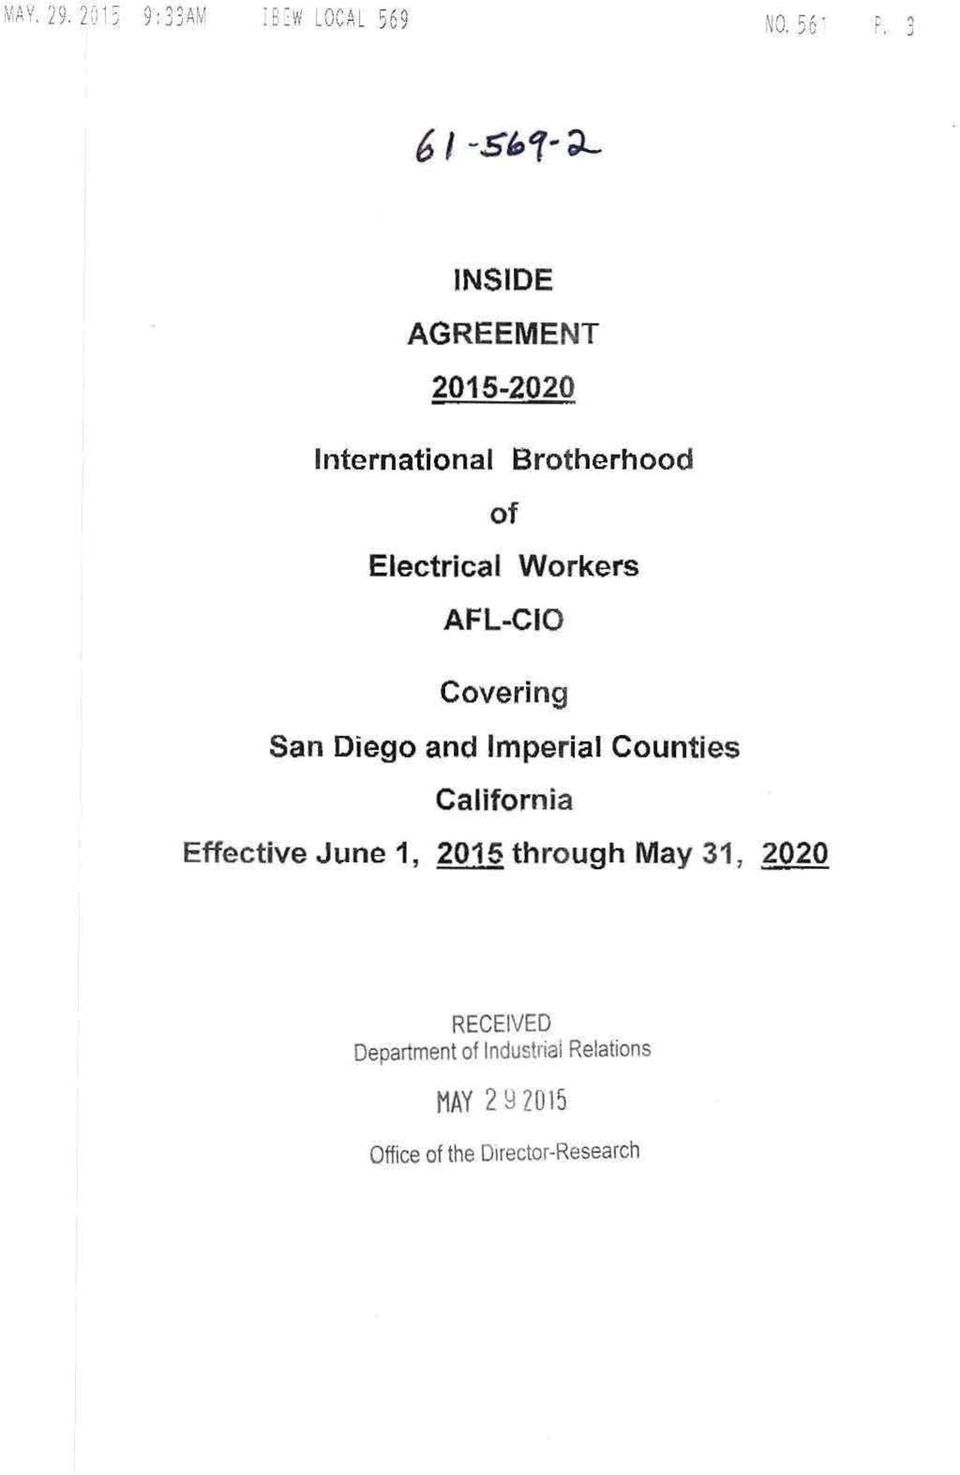 AFL-CIO Covering San Diego and Imperial Counties California Effective June 1, 2015